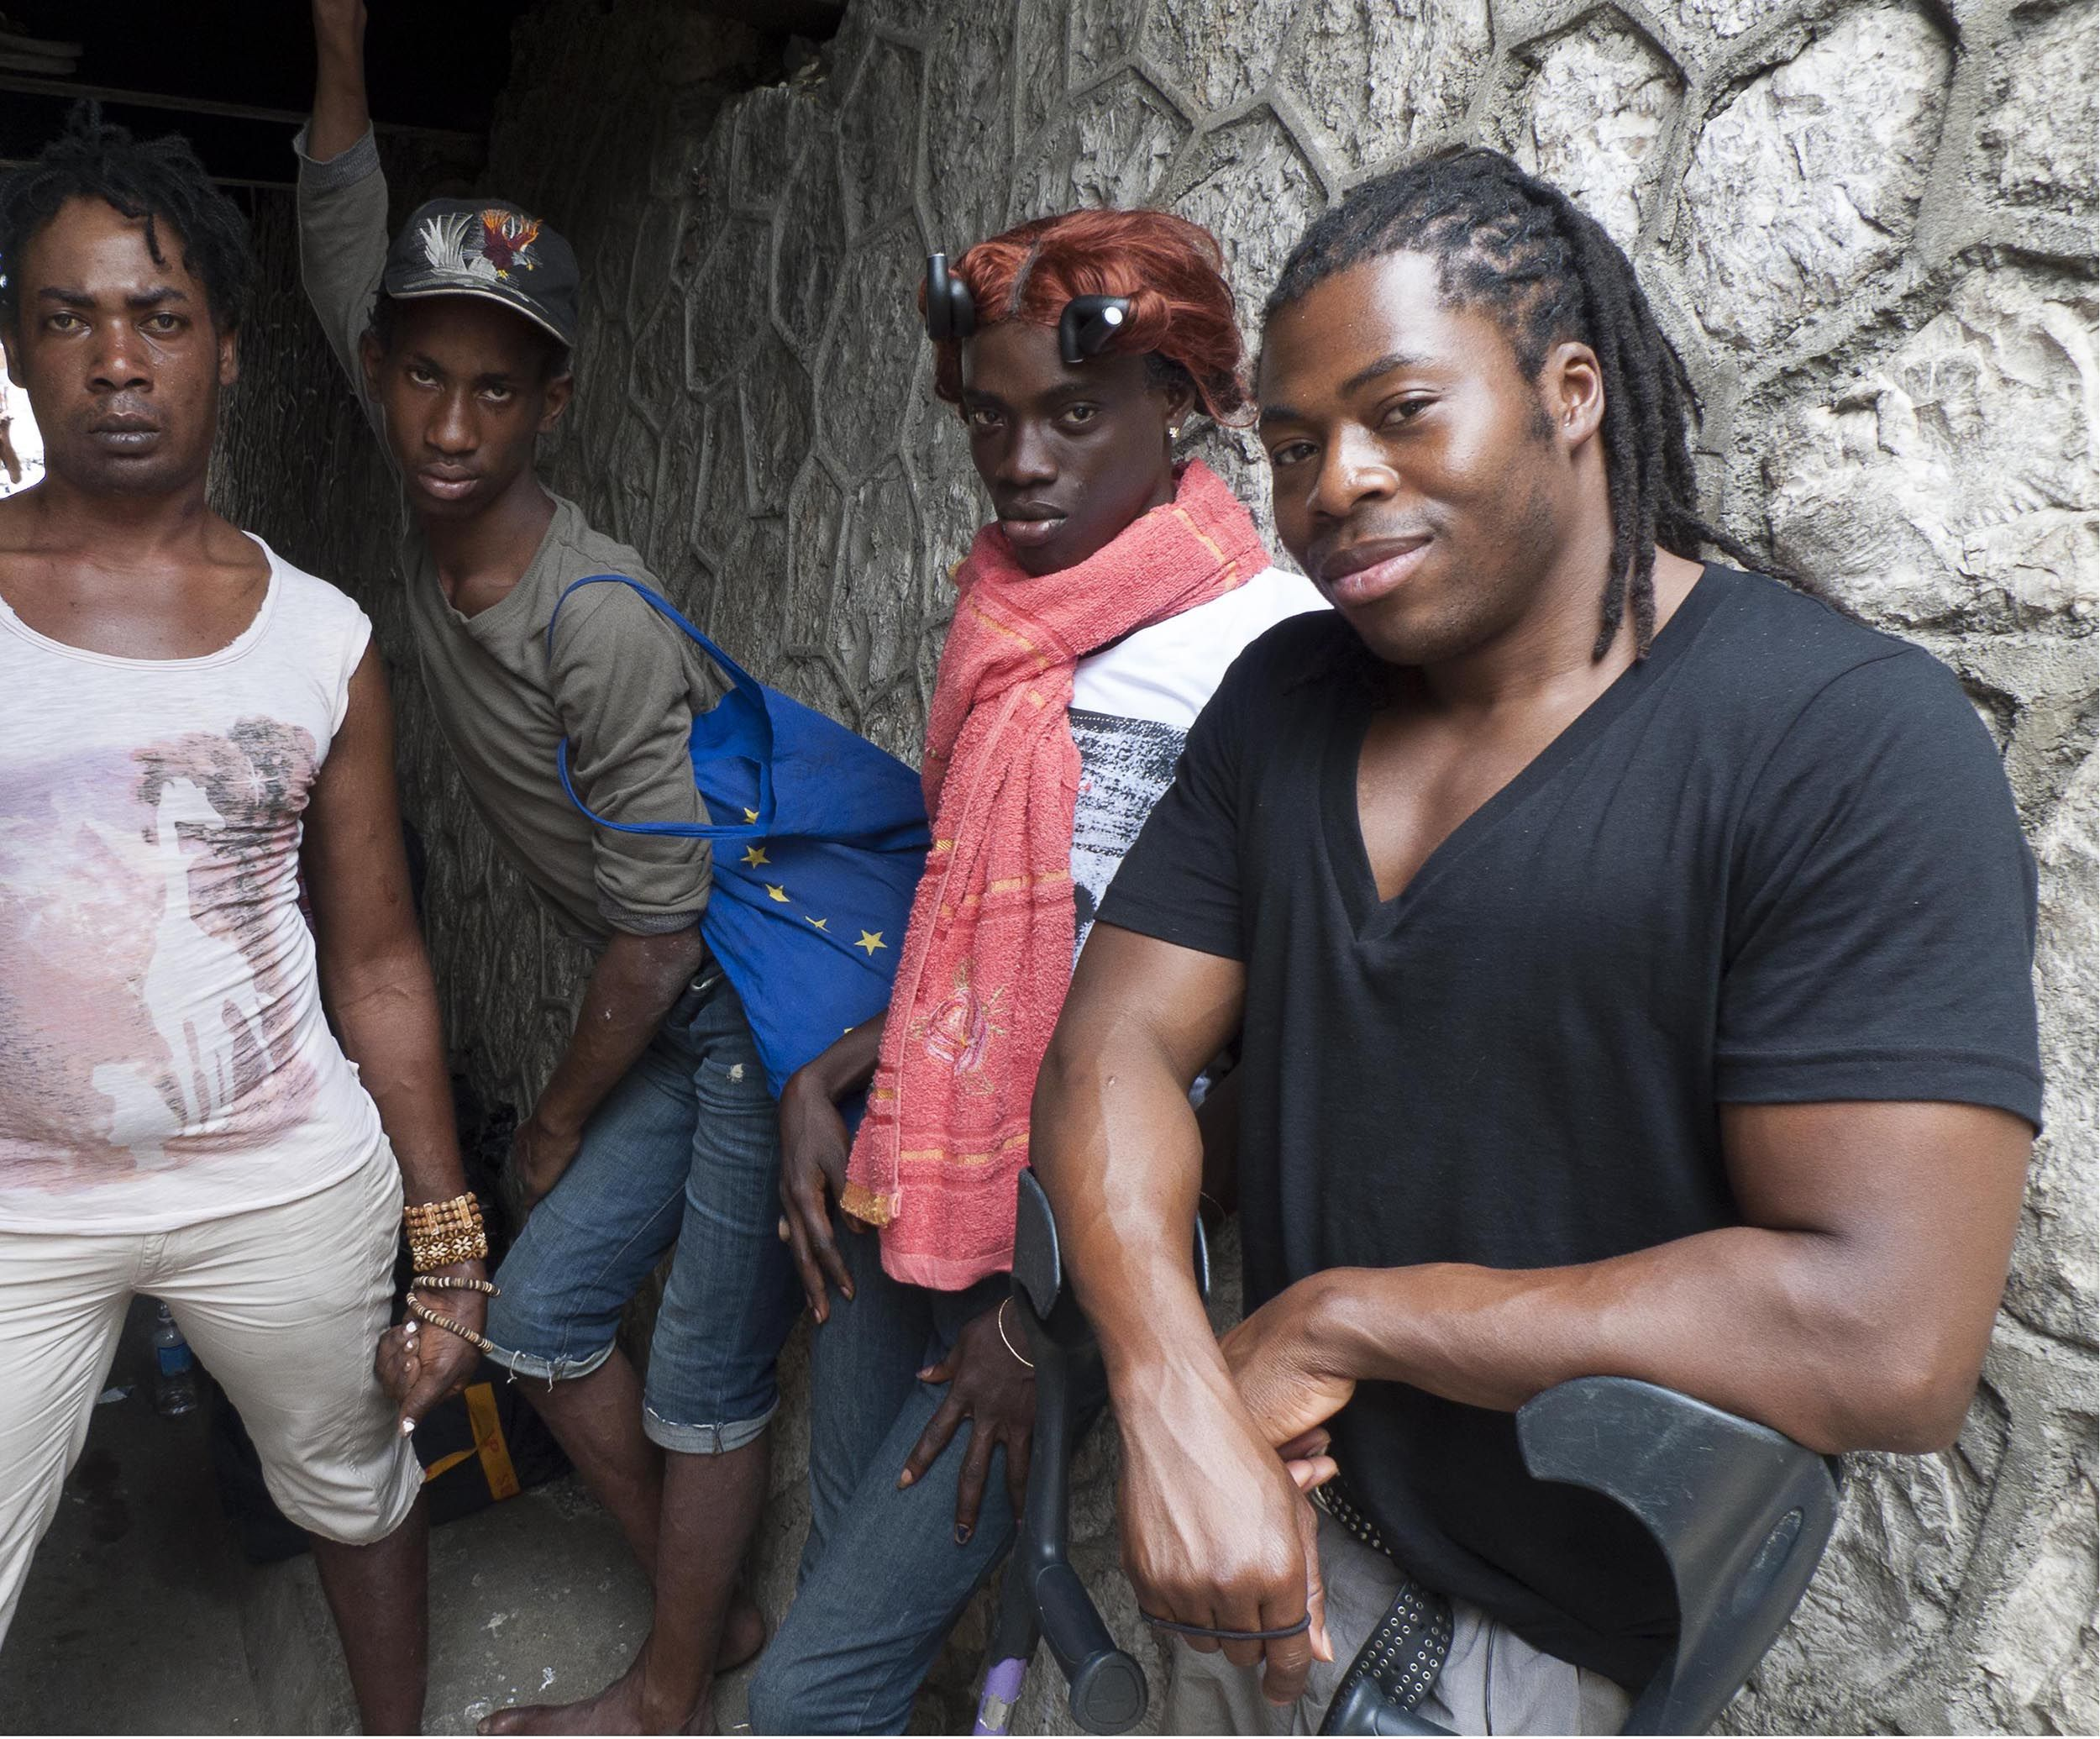 Jamaica's gay community are living with rats: C4 reveals shocking truth